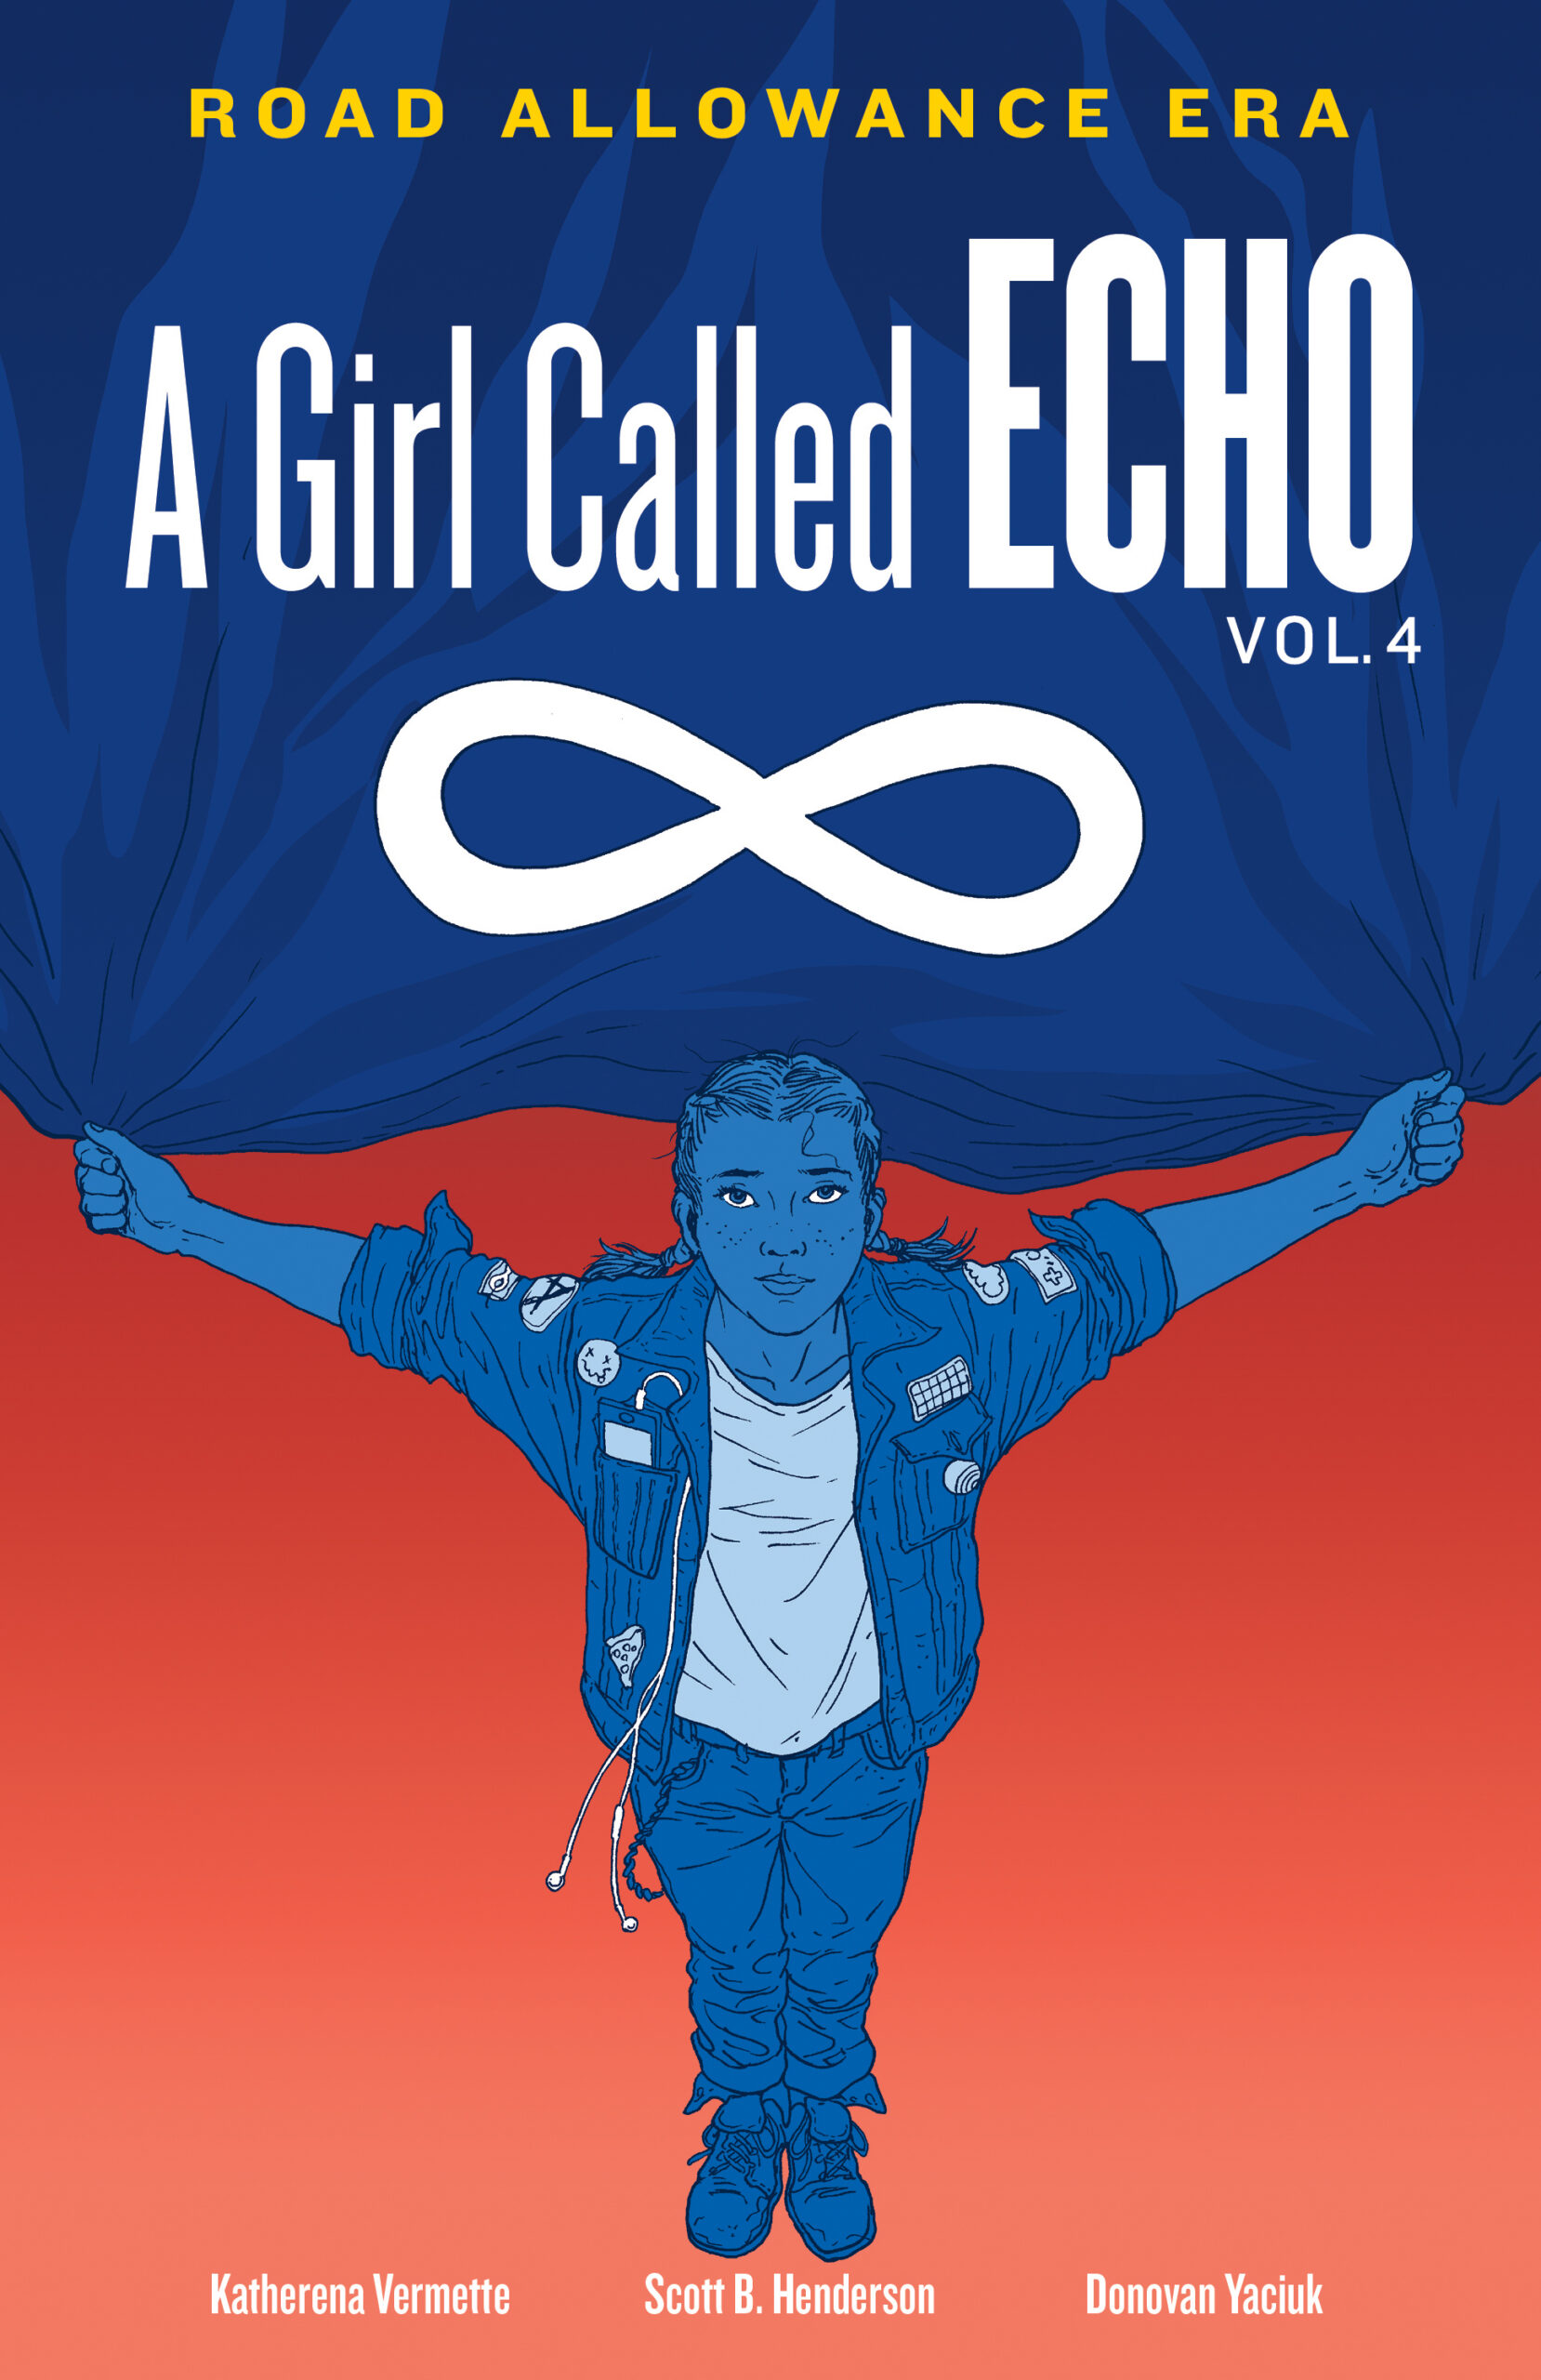 The book cover for Vol. 4, A Girl Called Echo by Katherena Vermette.